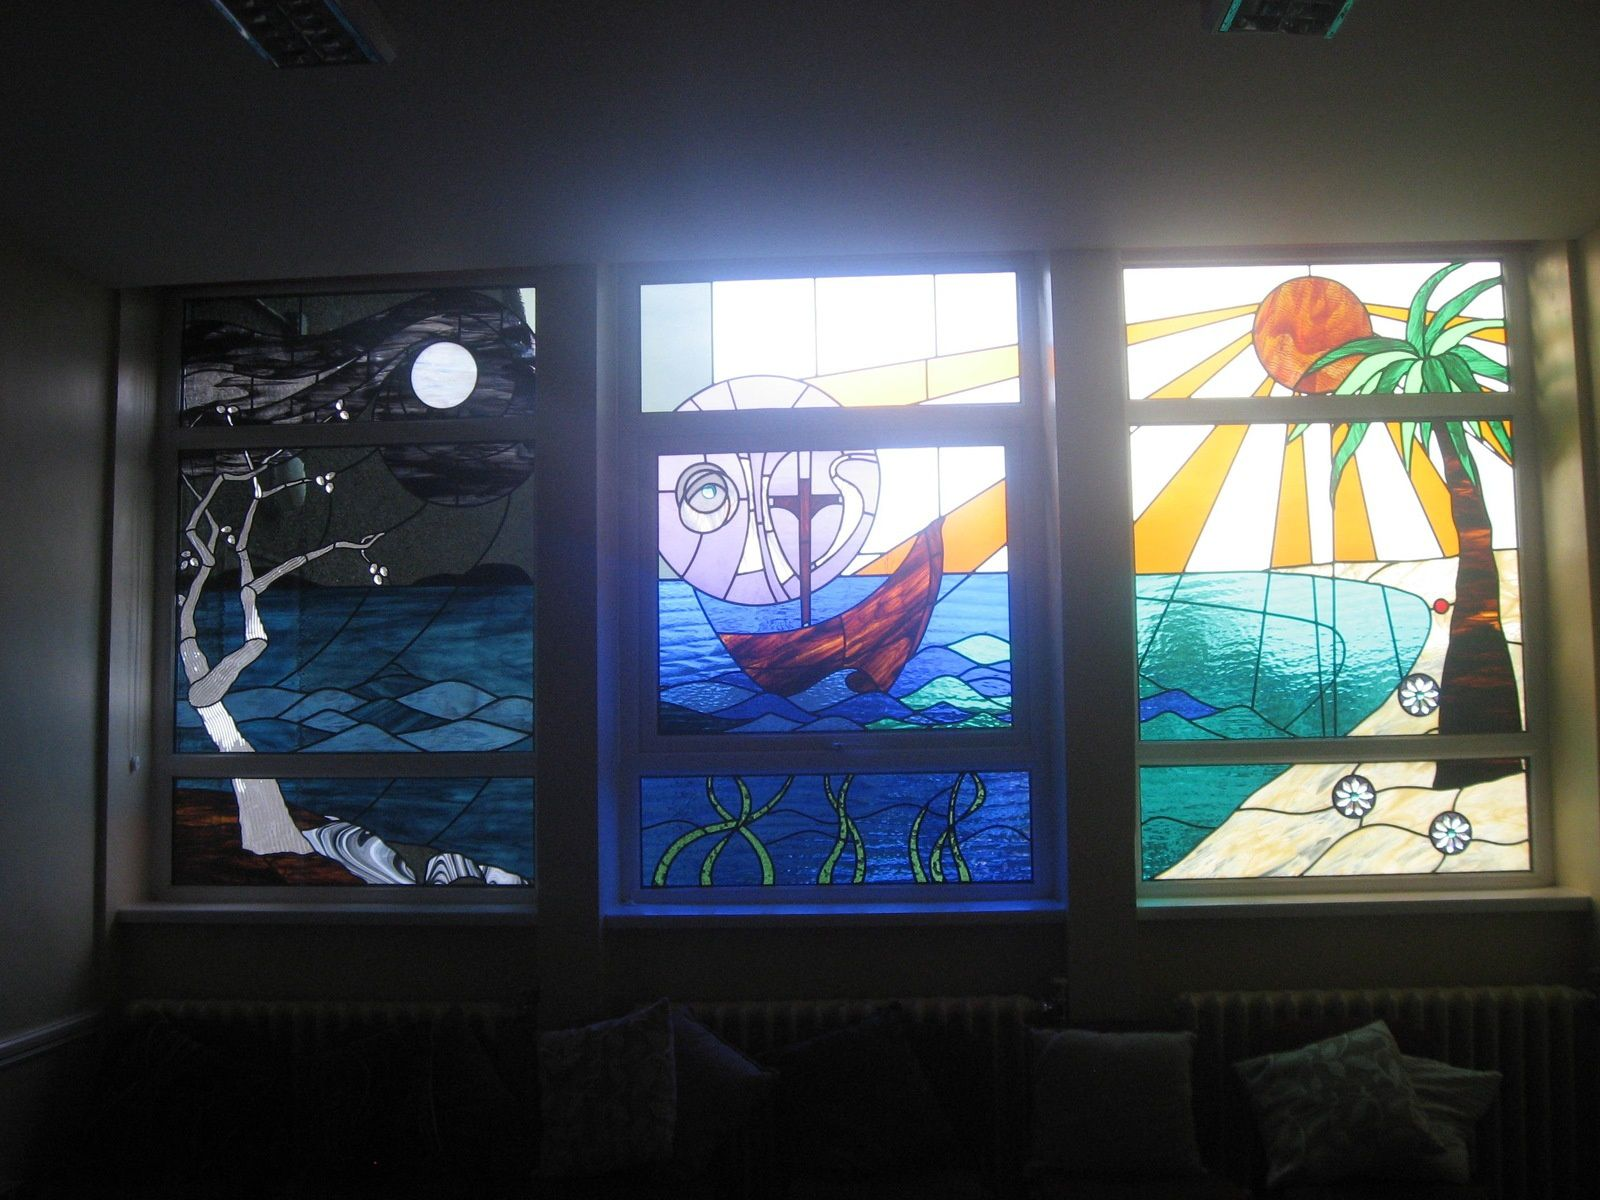 The three panels of the stained glass windows